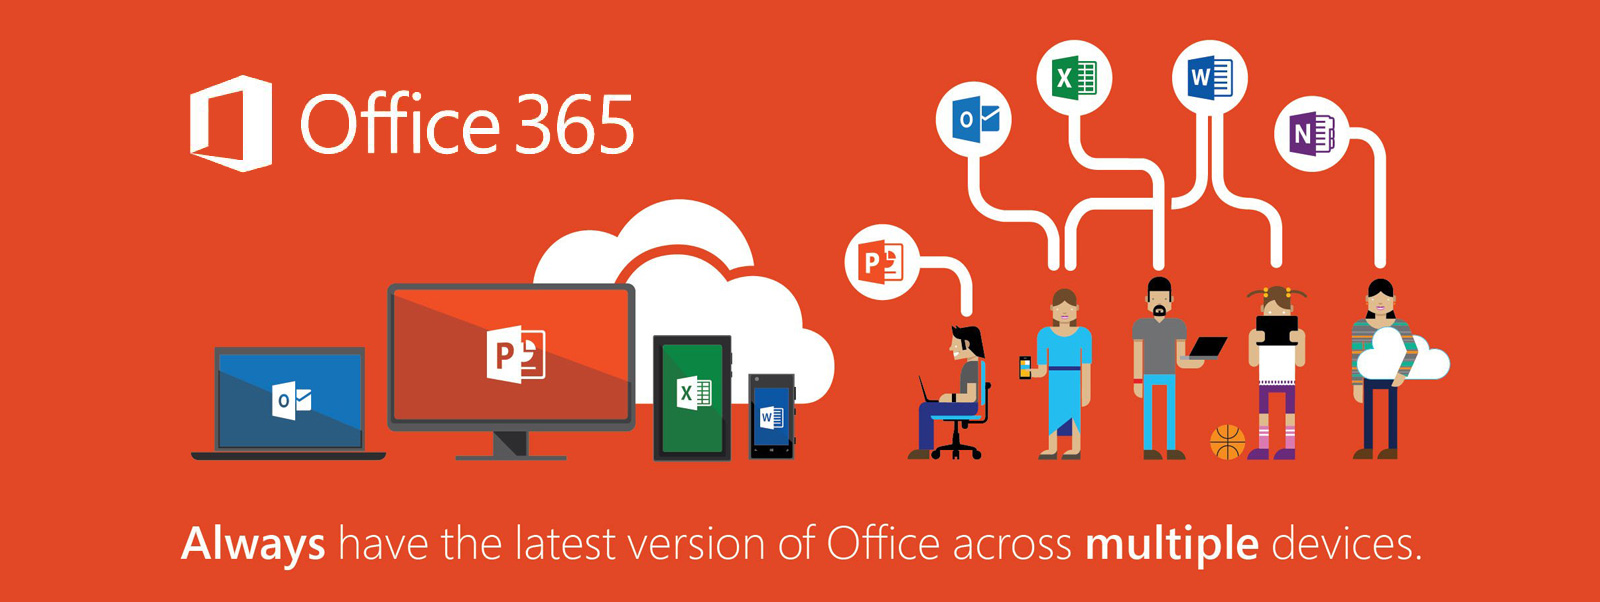 WA IT specialise in Office 356 migrations and deployment